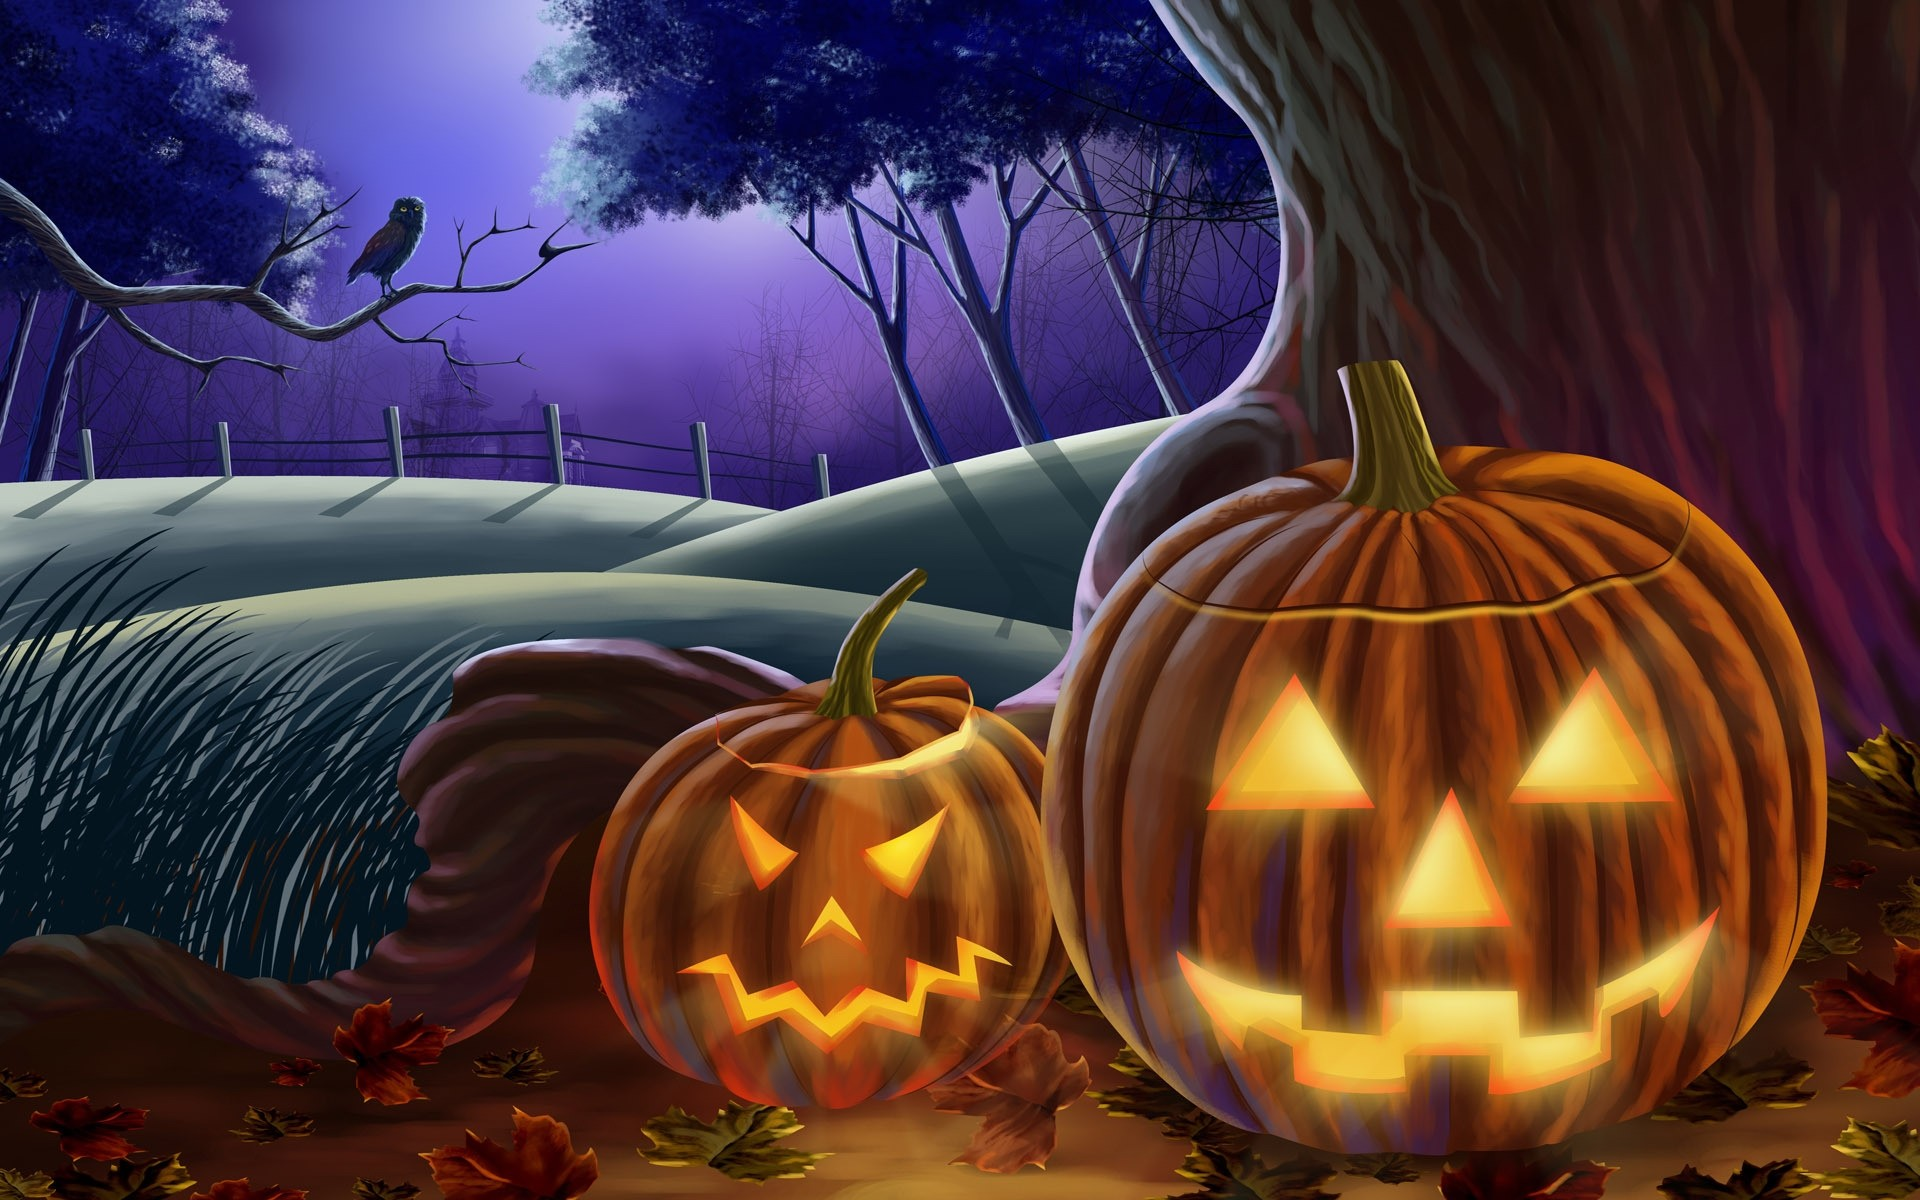 illuminated pumpkins for halloween. android wallpapers for free.